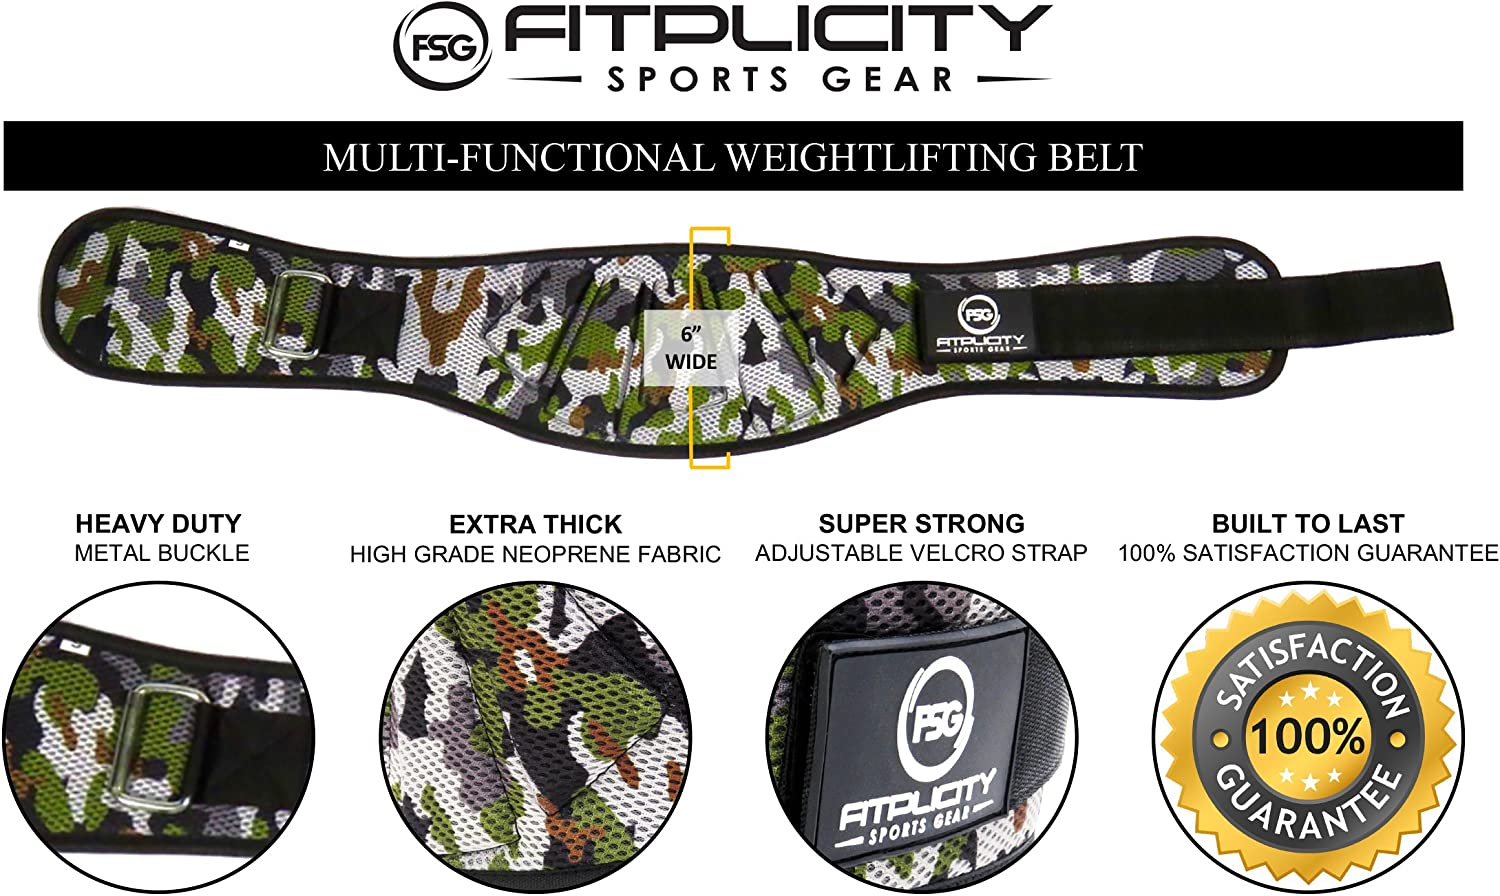 Fitness Workout Back Support for Lifting Cross Training and Powerlifitng Fitplicity Sports Gear Weightlifting Belt for Men and Women 6 Inch Weight Lifting Belt